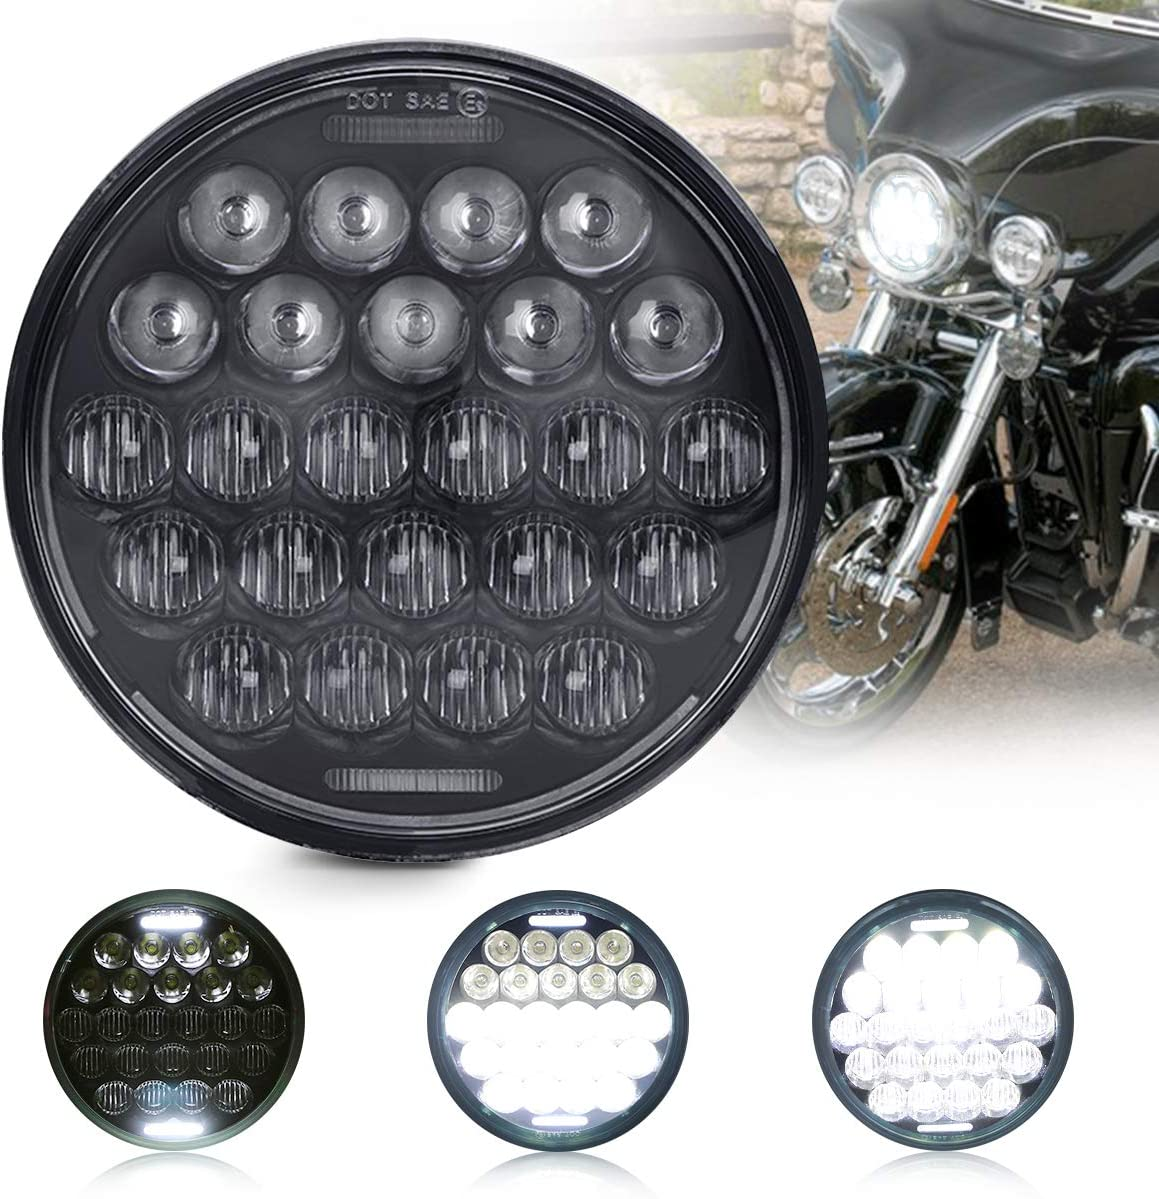 5.75 Inch Led Headlight 5-3//4 Inch Round Headlight with DRL High Low Beam for Harley Dyna Sportster Iron 883 Street Rod Softail Motorcycle